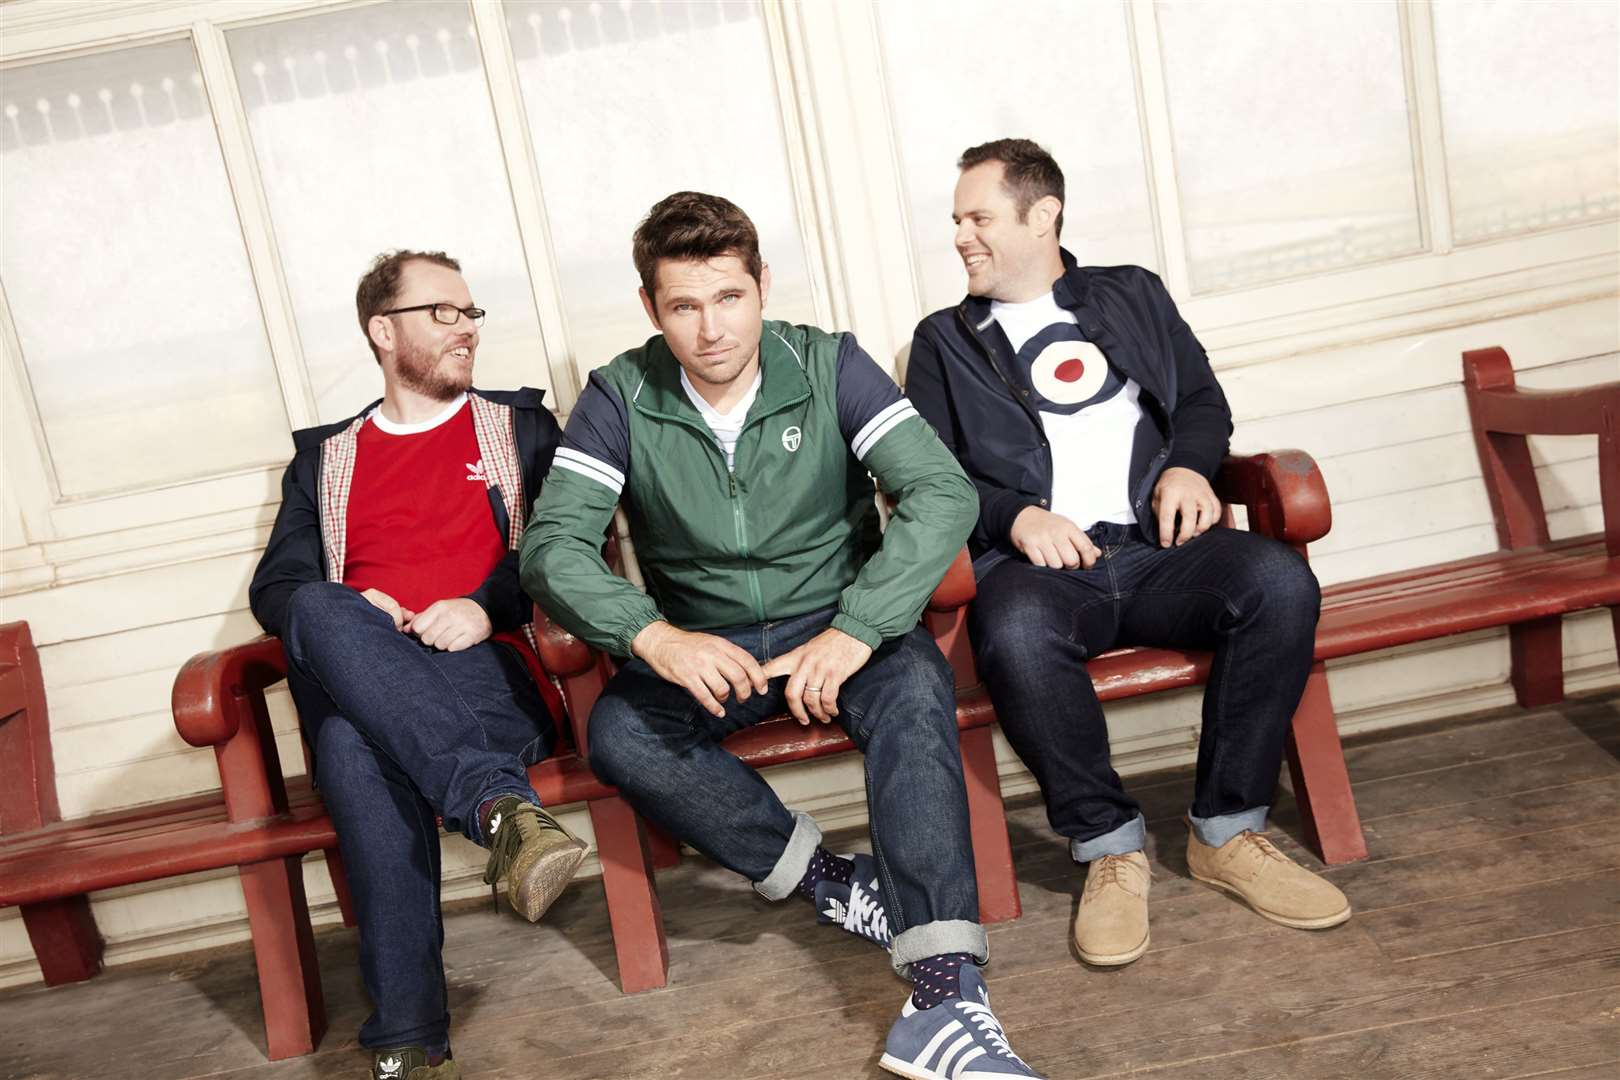 Scouting for Girls. Contributed picture